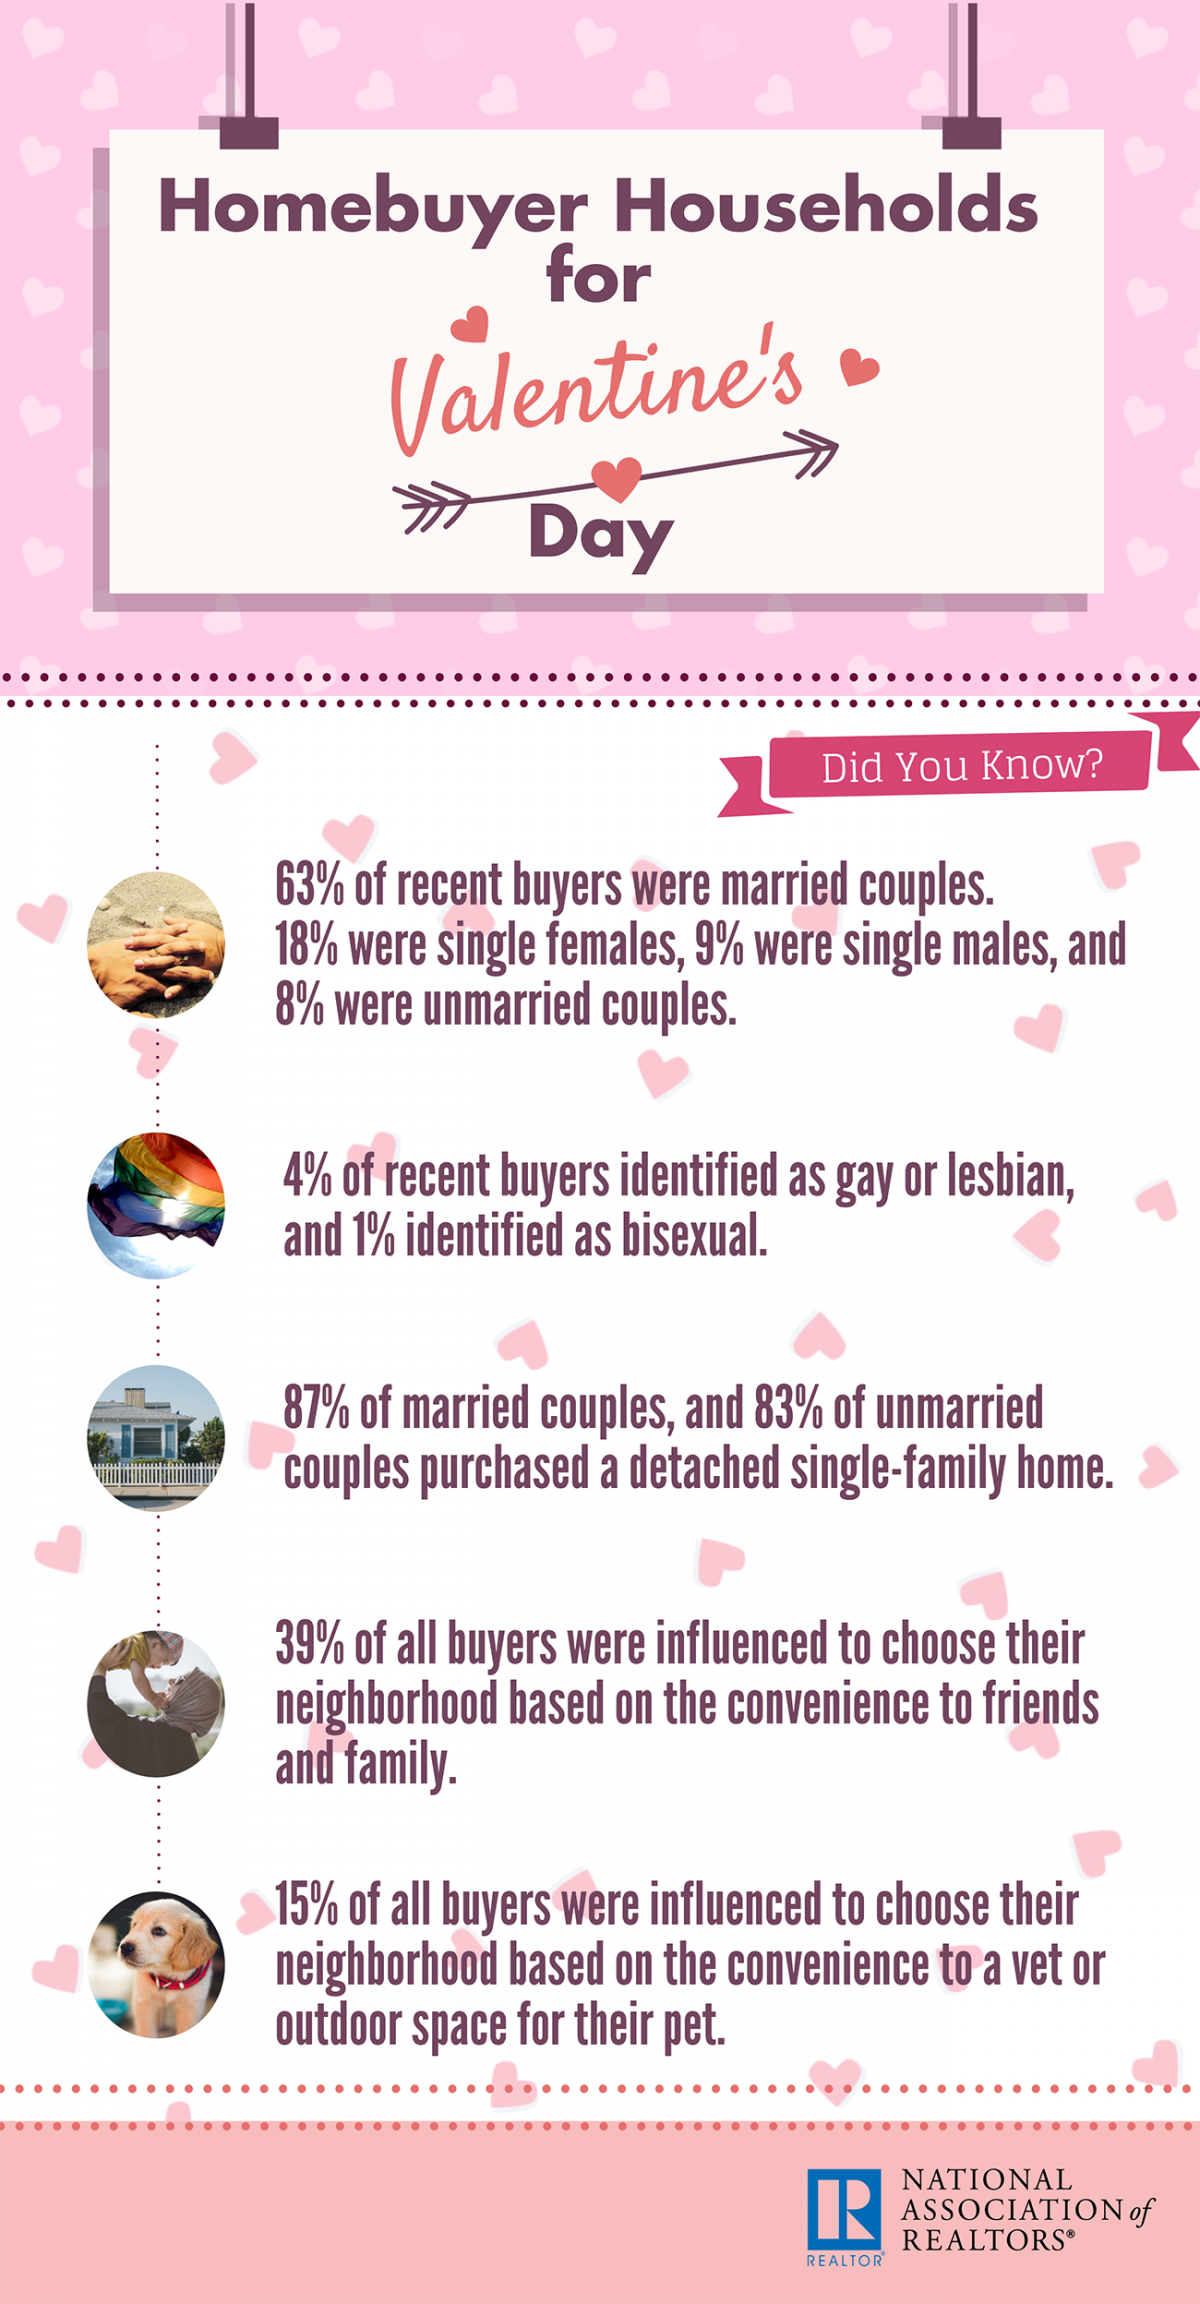 Infographic: Homebuyer Households for Valentine's Day